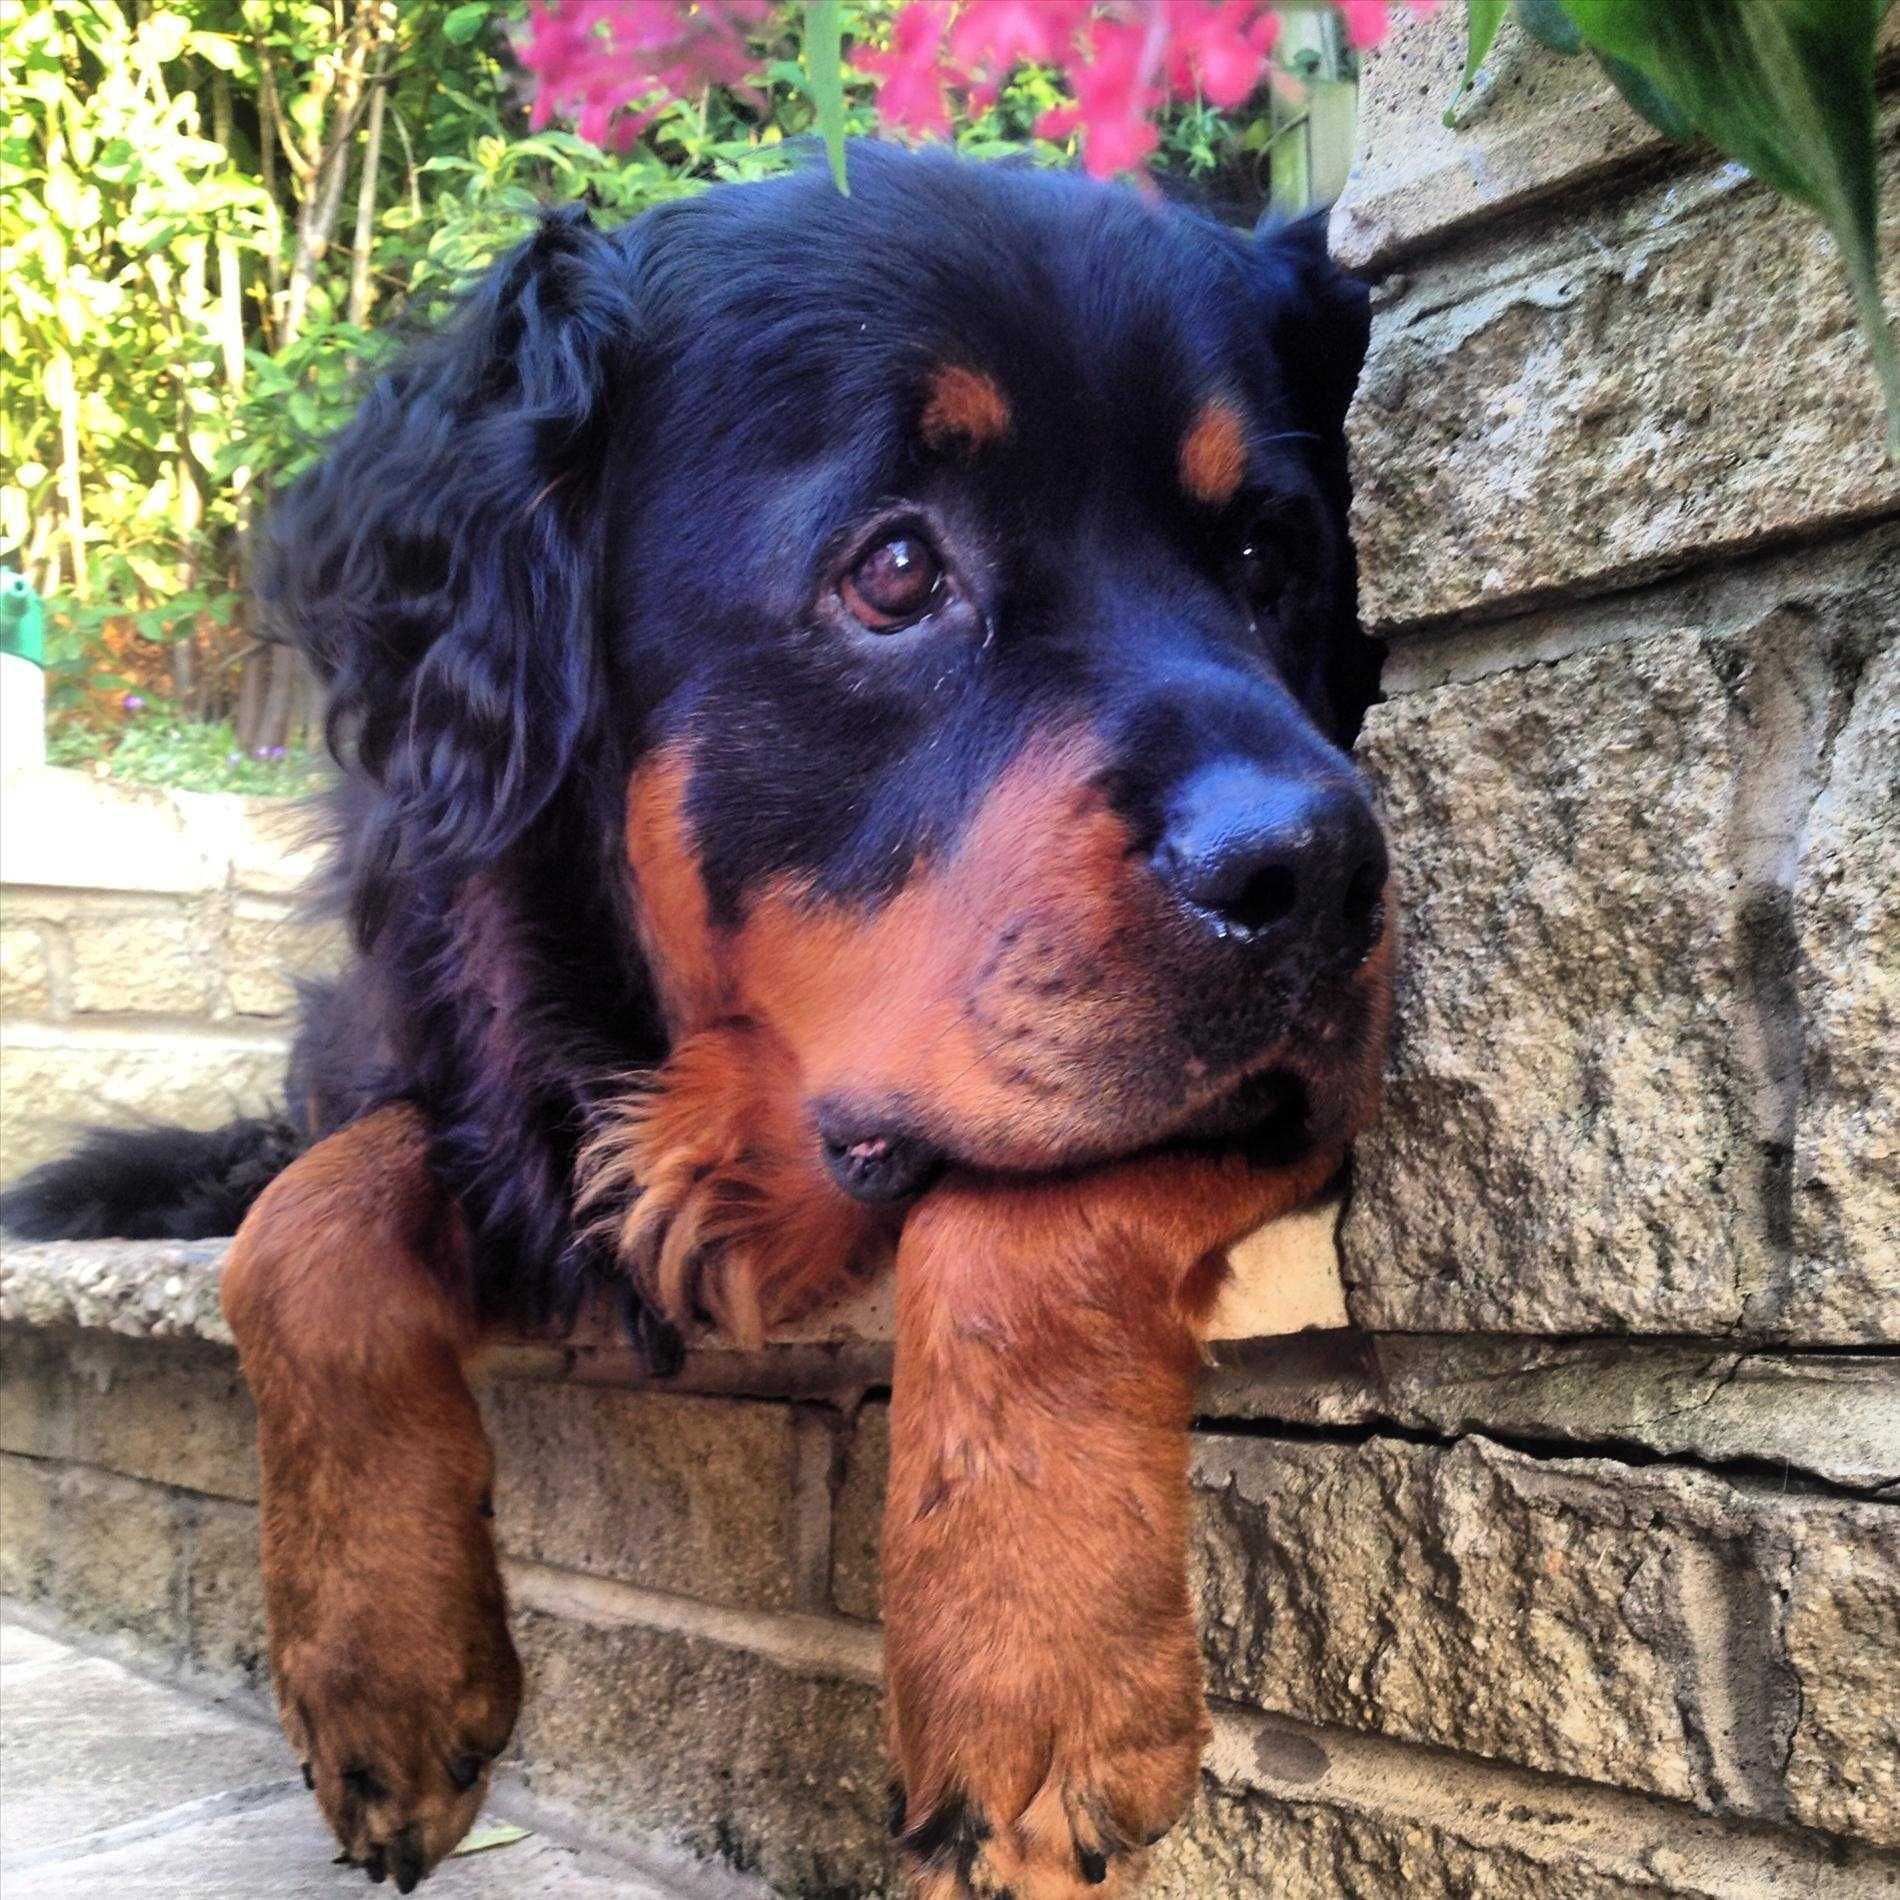 Breed Dogs Allmuttcom Gordon Setter Rottweiler Mix Pictures Of Breed Dogs Spockthedogcom Spockthedogco Long Haired Rottweiler Rottweiler Mix Cute Cats And Dogs